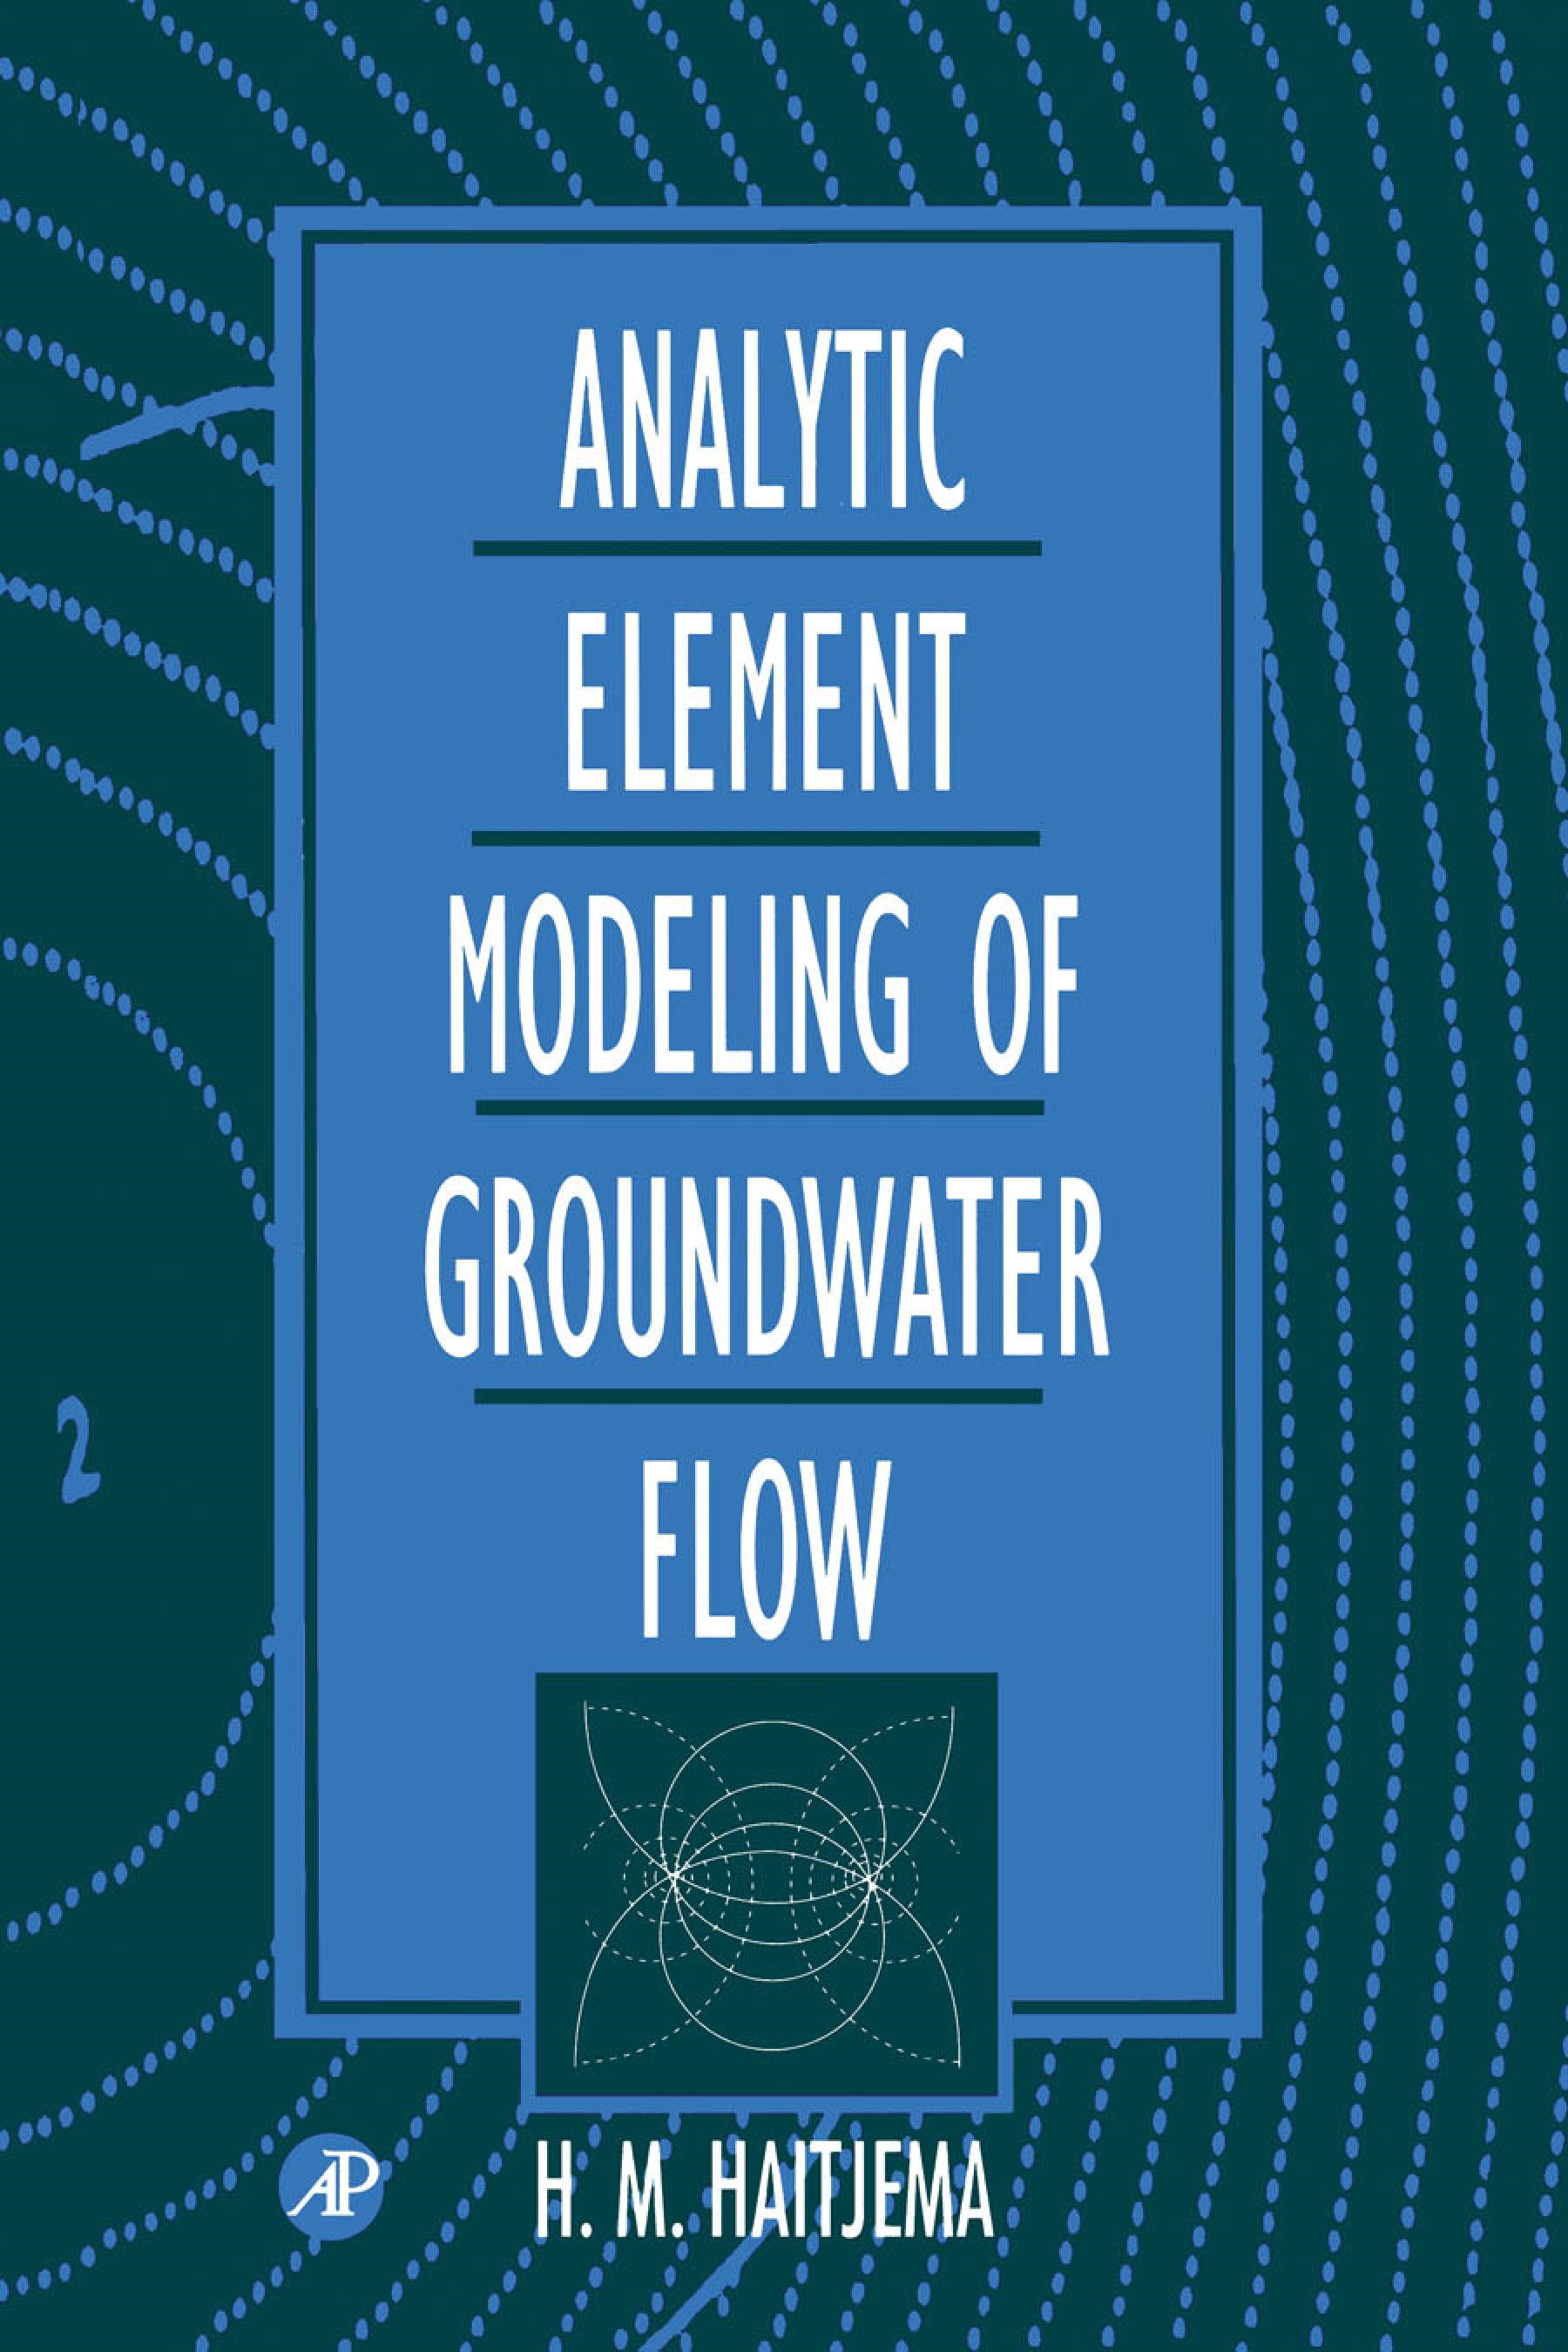 Analytic Element Modeling of Groundwater Flow By: Haitjema, H. M.